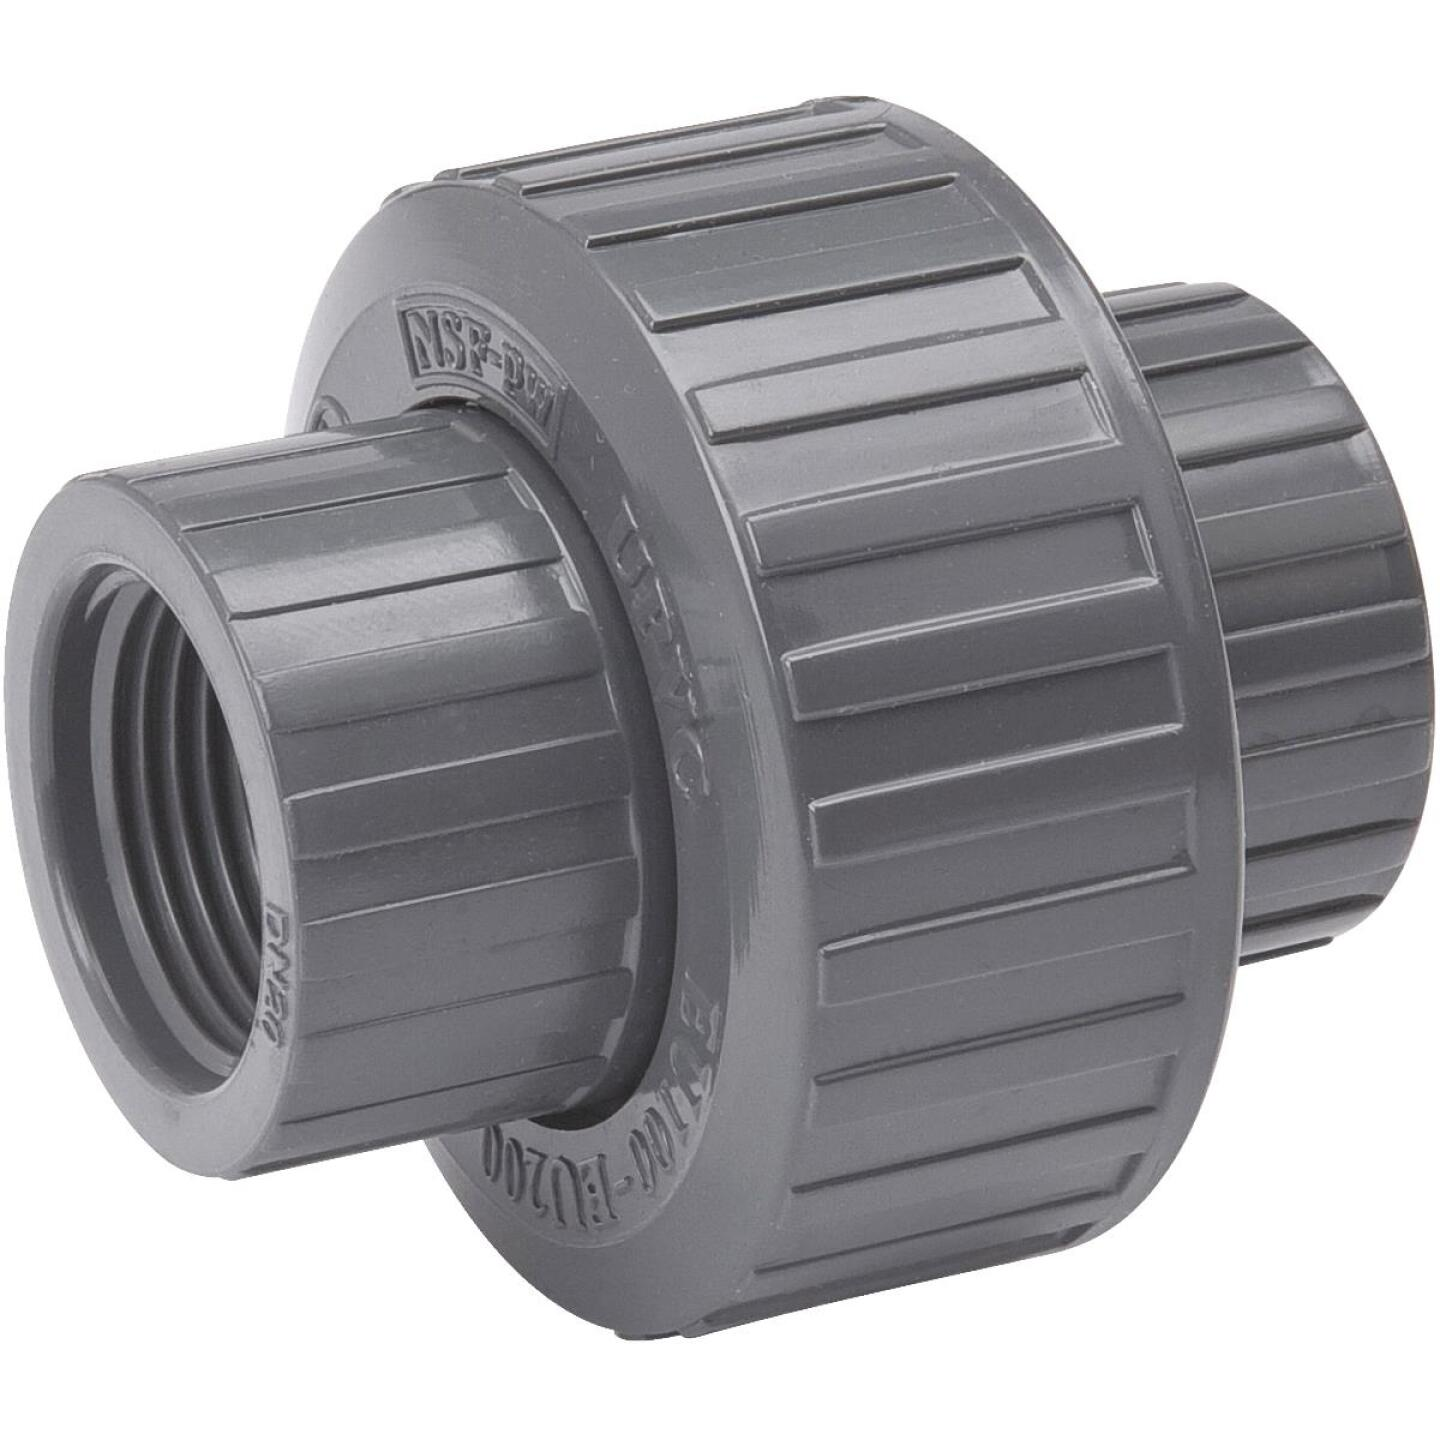 B&K 1 In. Threaded Schedule 80 PVC Union Image 1